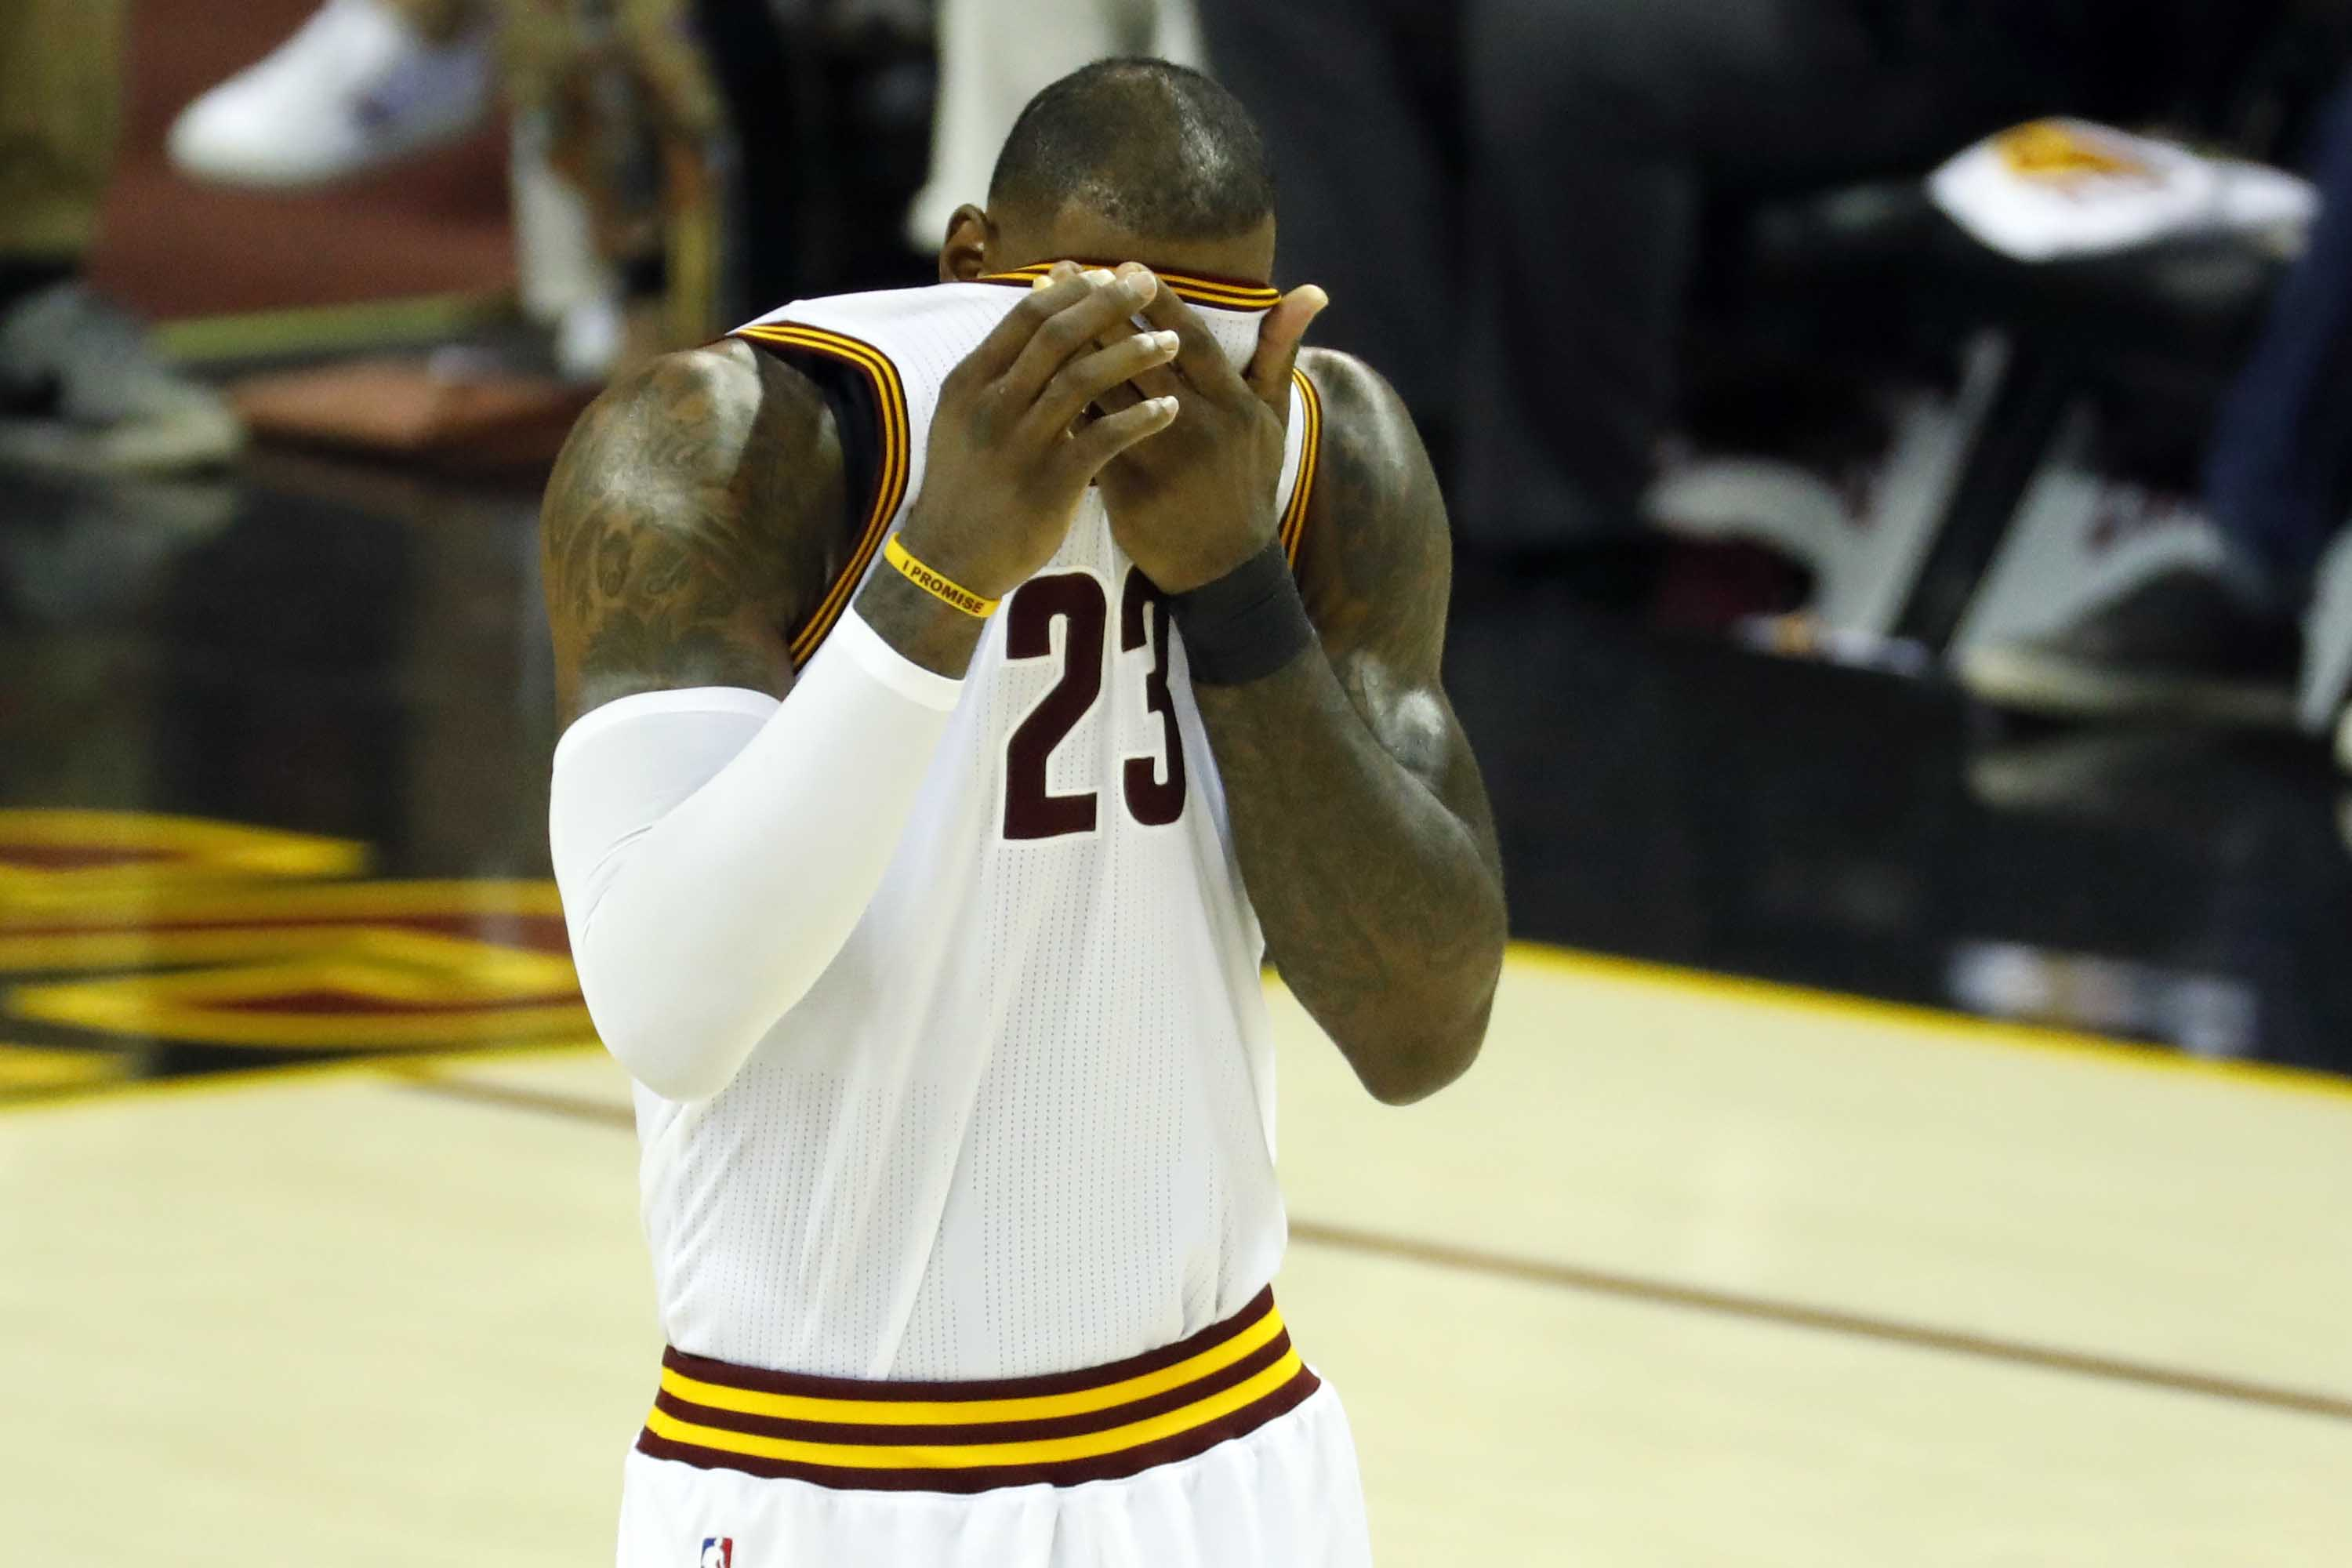 May 21, 2017; Cleveland, OH, USA; Cleveland Cavaliers forward LeBron James (23) reacts during the second half against Boston Celtics in game three of the Eastern conference finals of the NBA Playoffs at Quicken Loans Arena. Mandatory Credit: Rick Osentoski-USA TODAY Sports